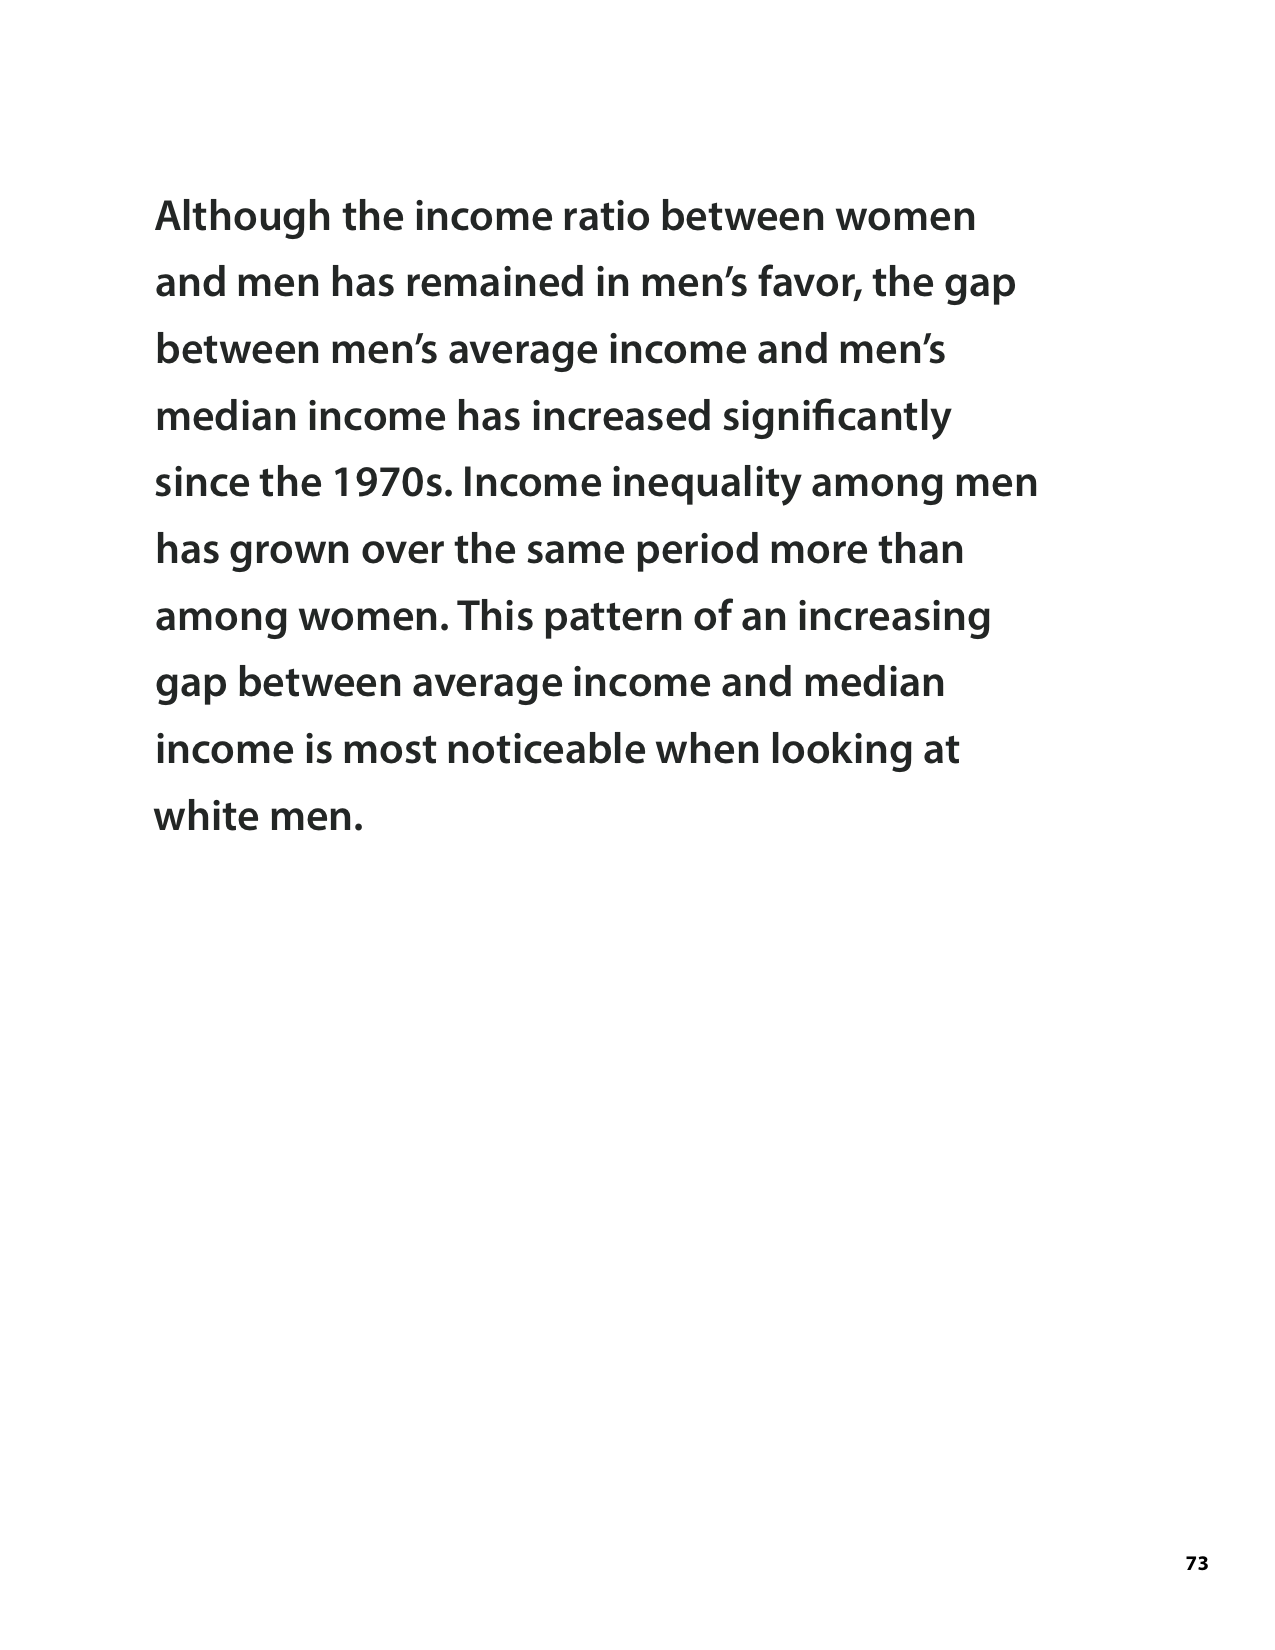 IncomeGuide_2013_Jan17_RGB_page 73_73.png